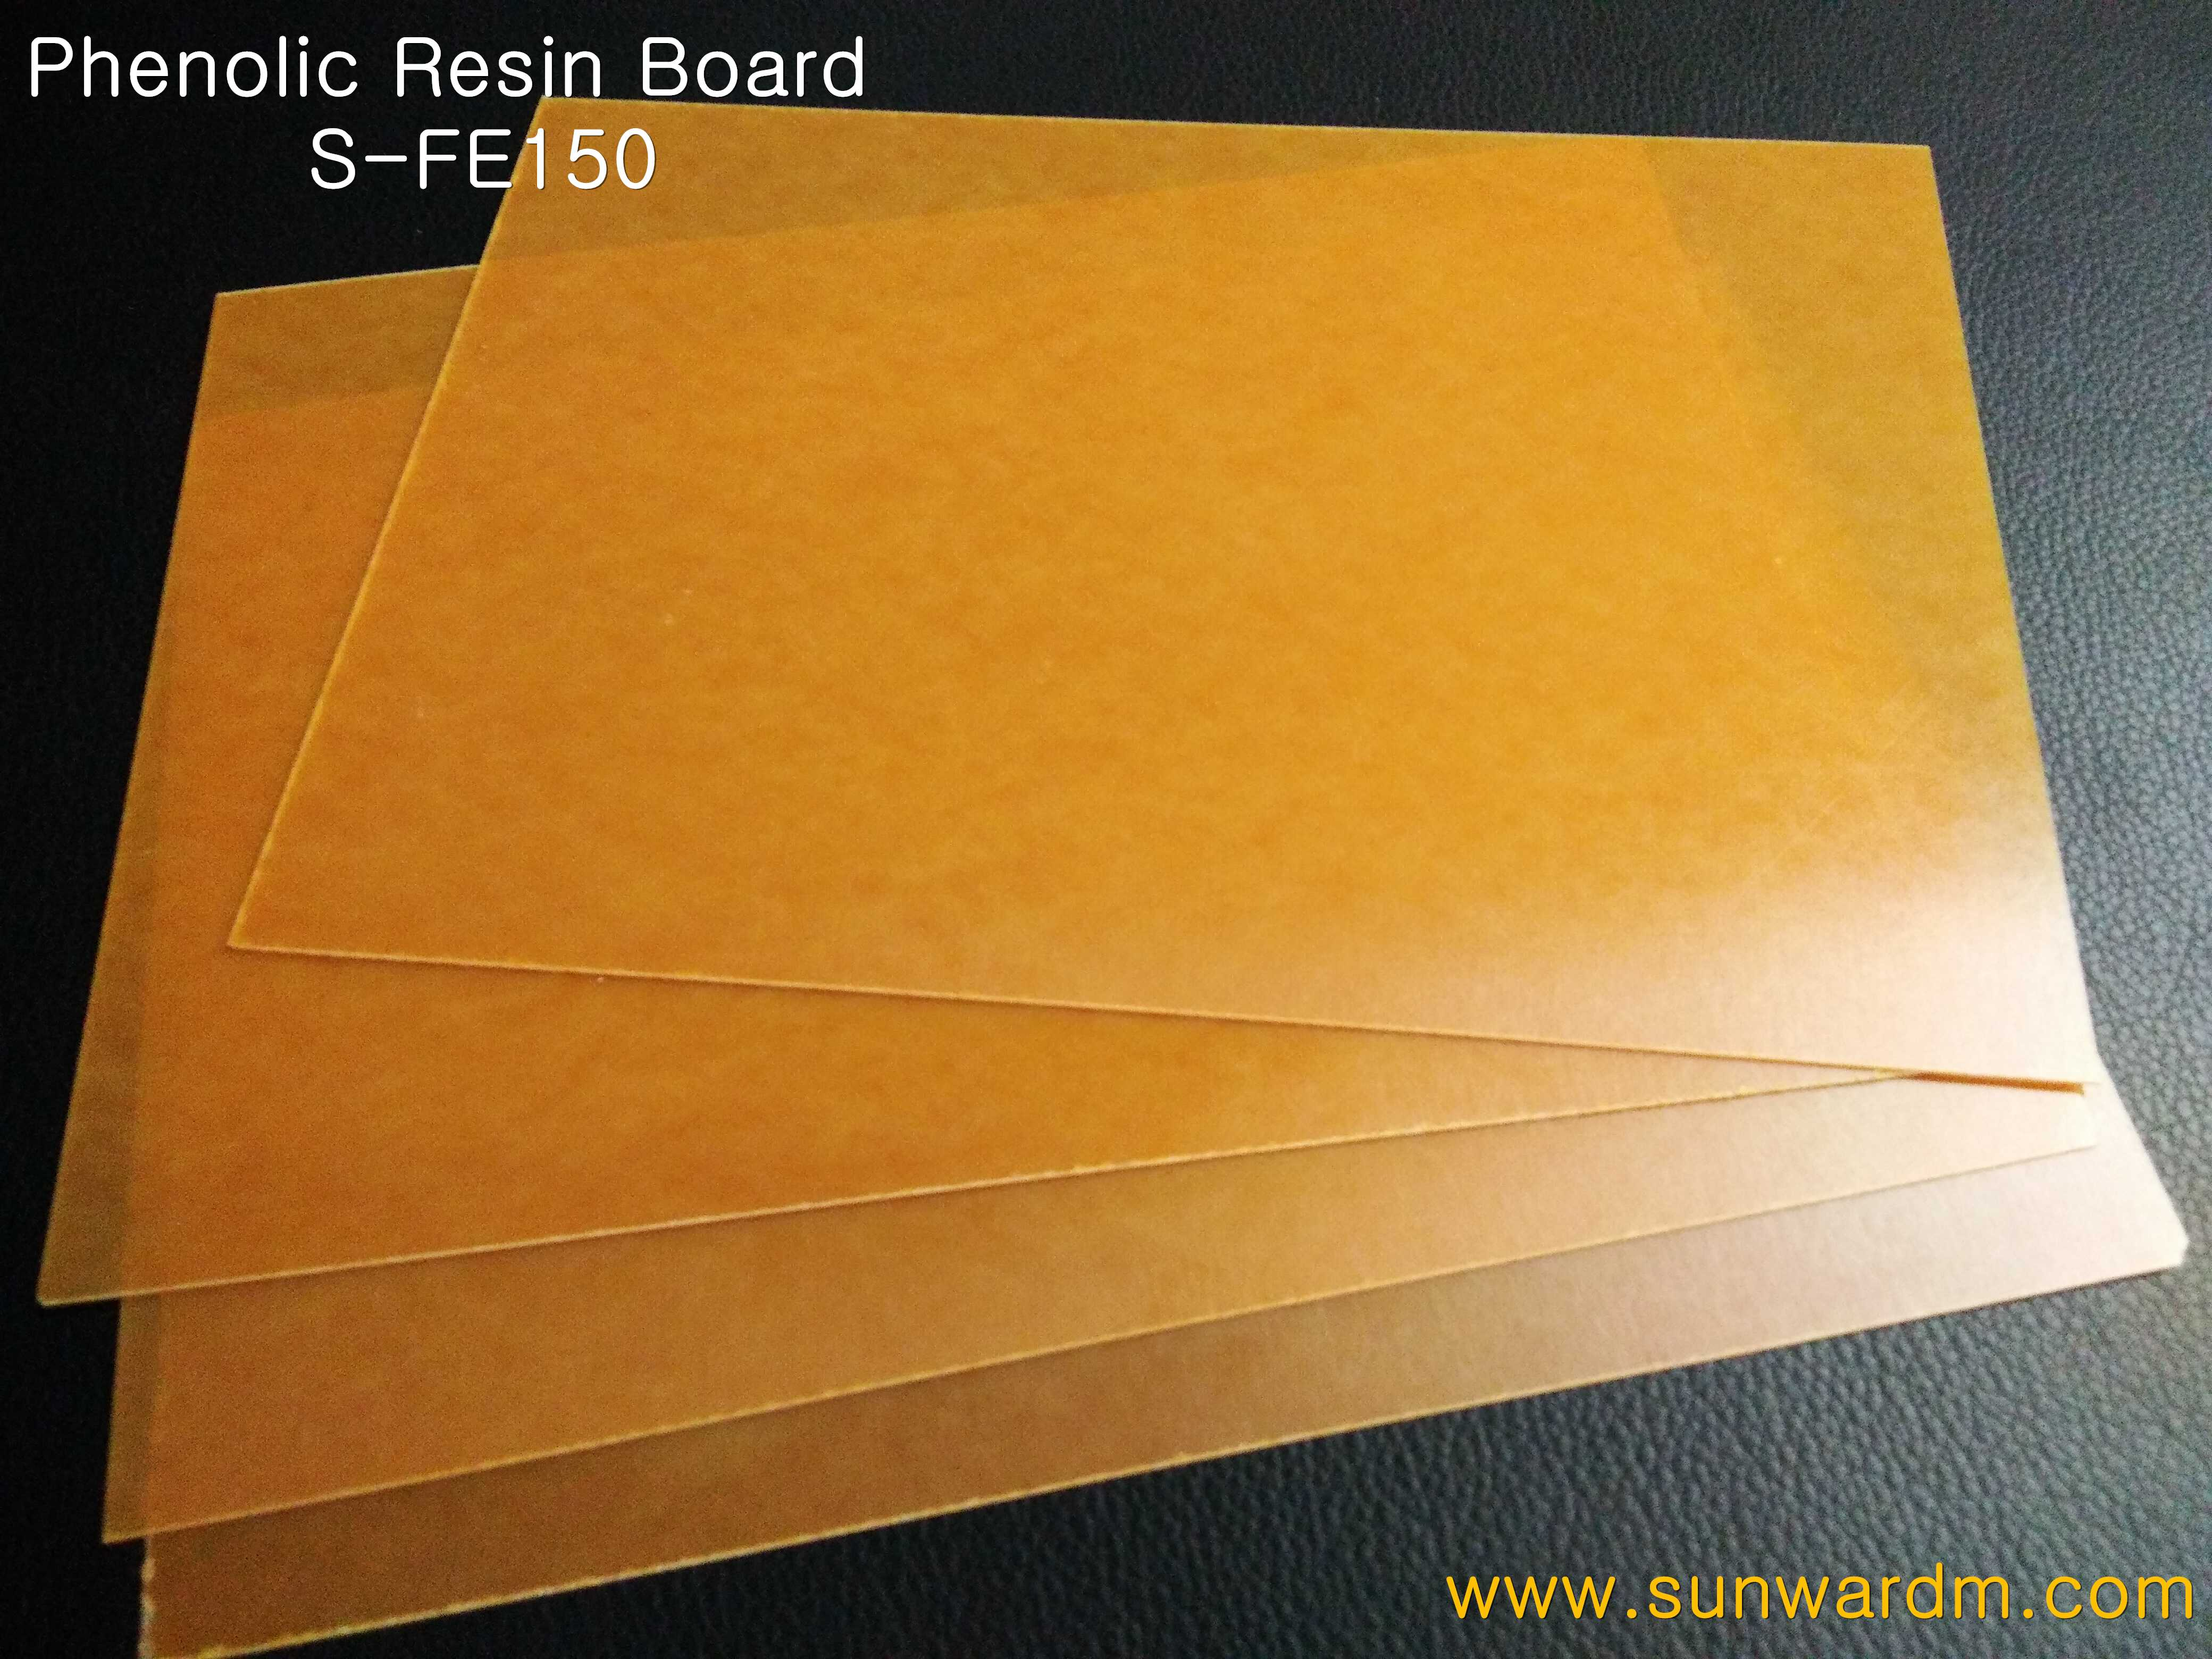 Phenolic Resin Board for PCB drilling